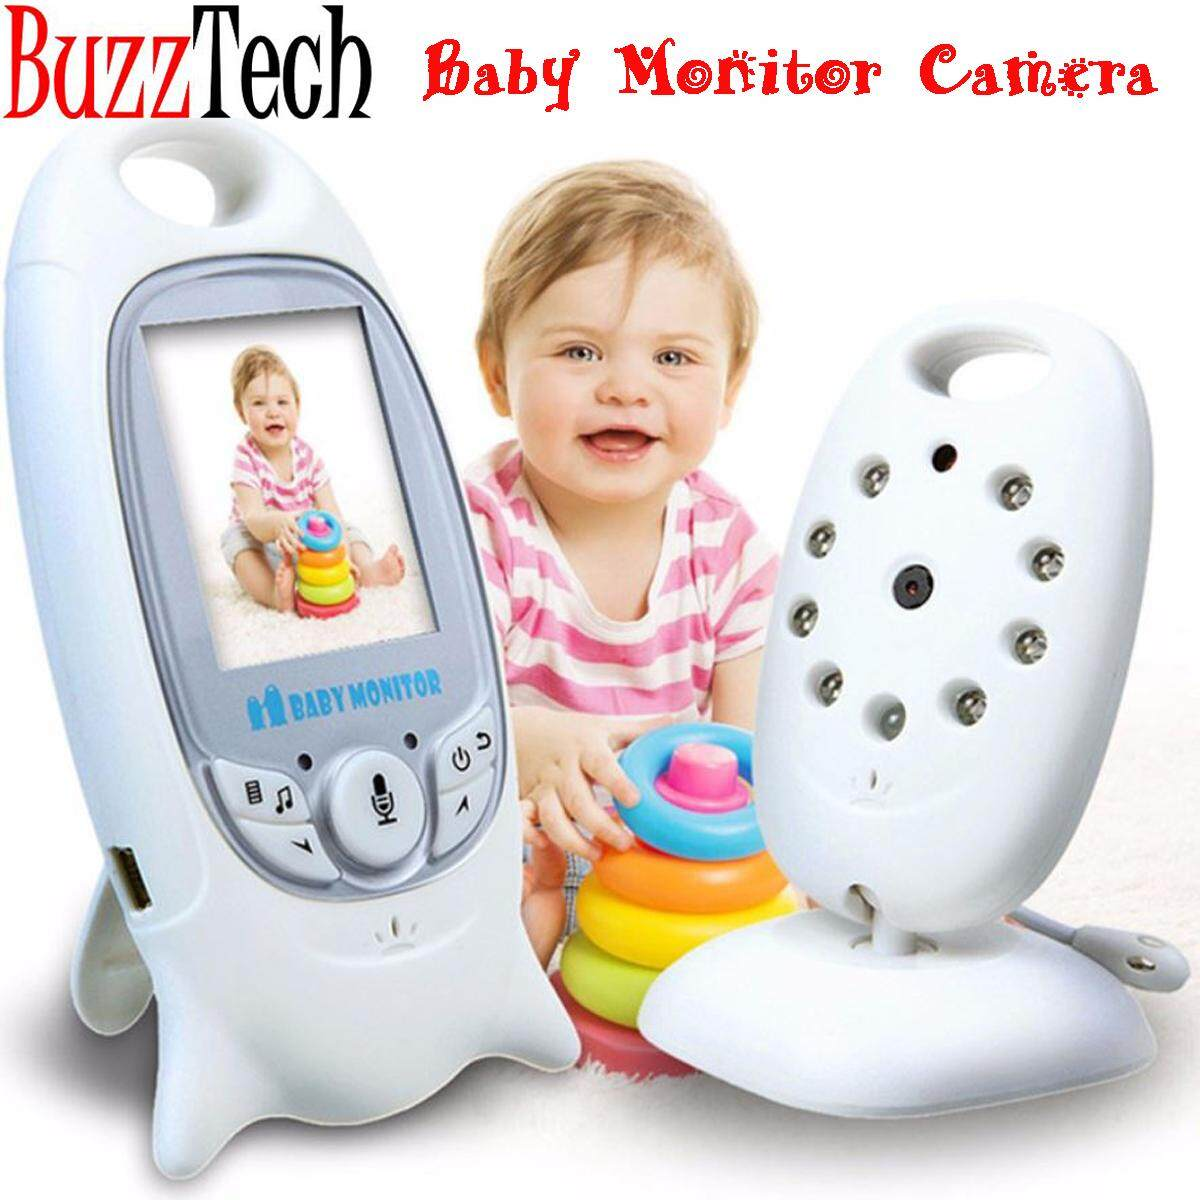 BuzzTech VB601 Wireless Digital LCD Video/Audio Baby Monitor Camera 2.4GHz With Night Vision Electronic Radio Temperature Monitoring